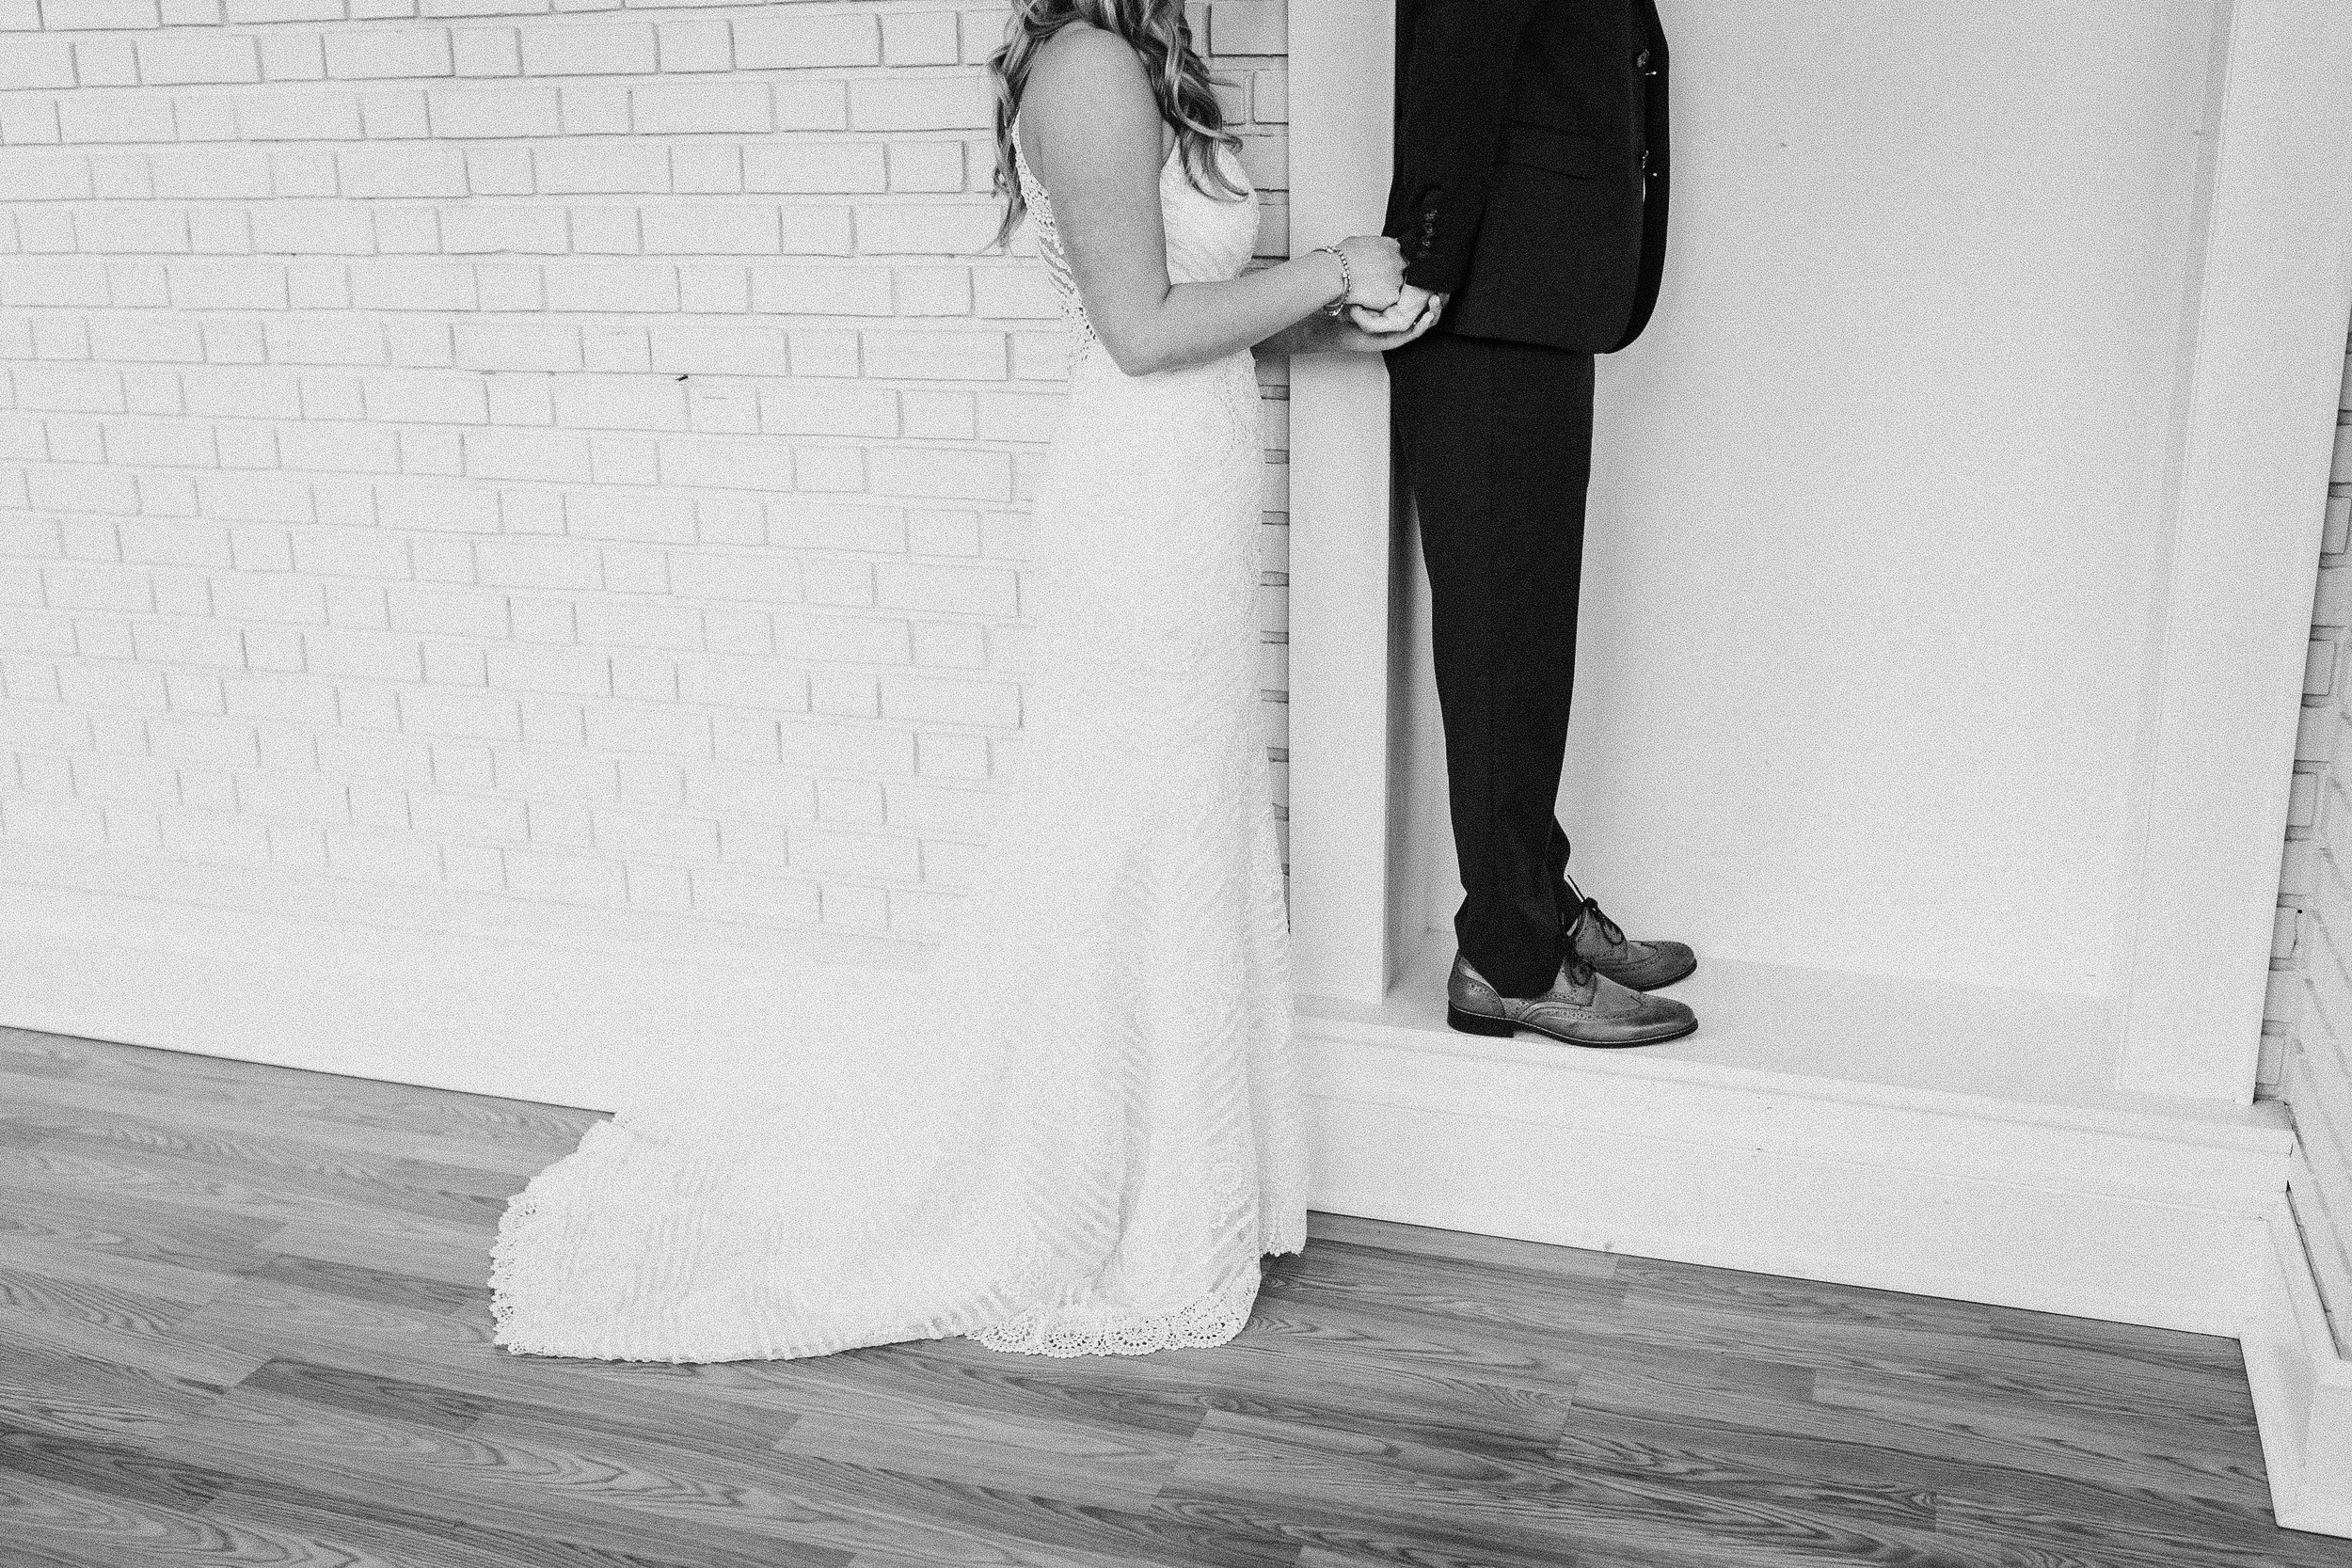 michellebrandonwedding-21.jpg